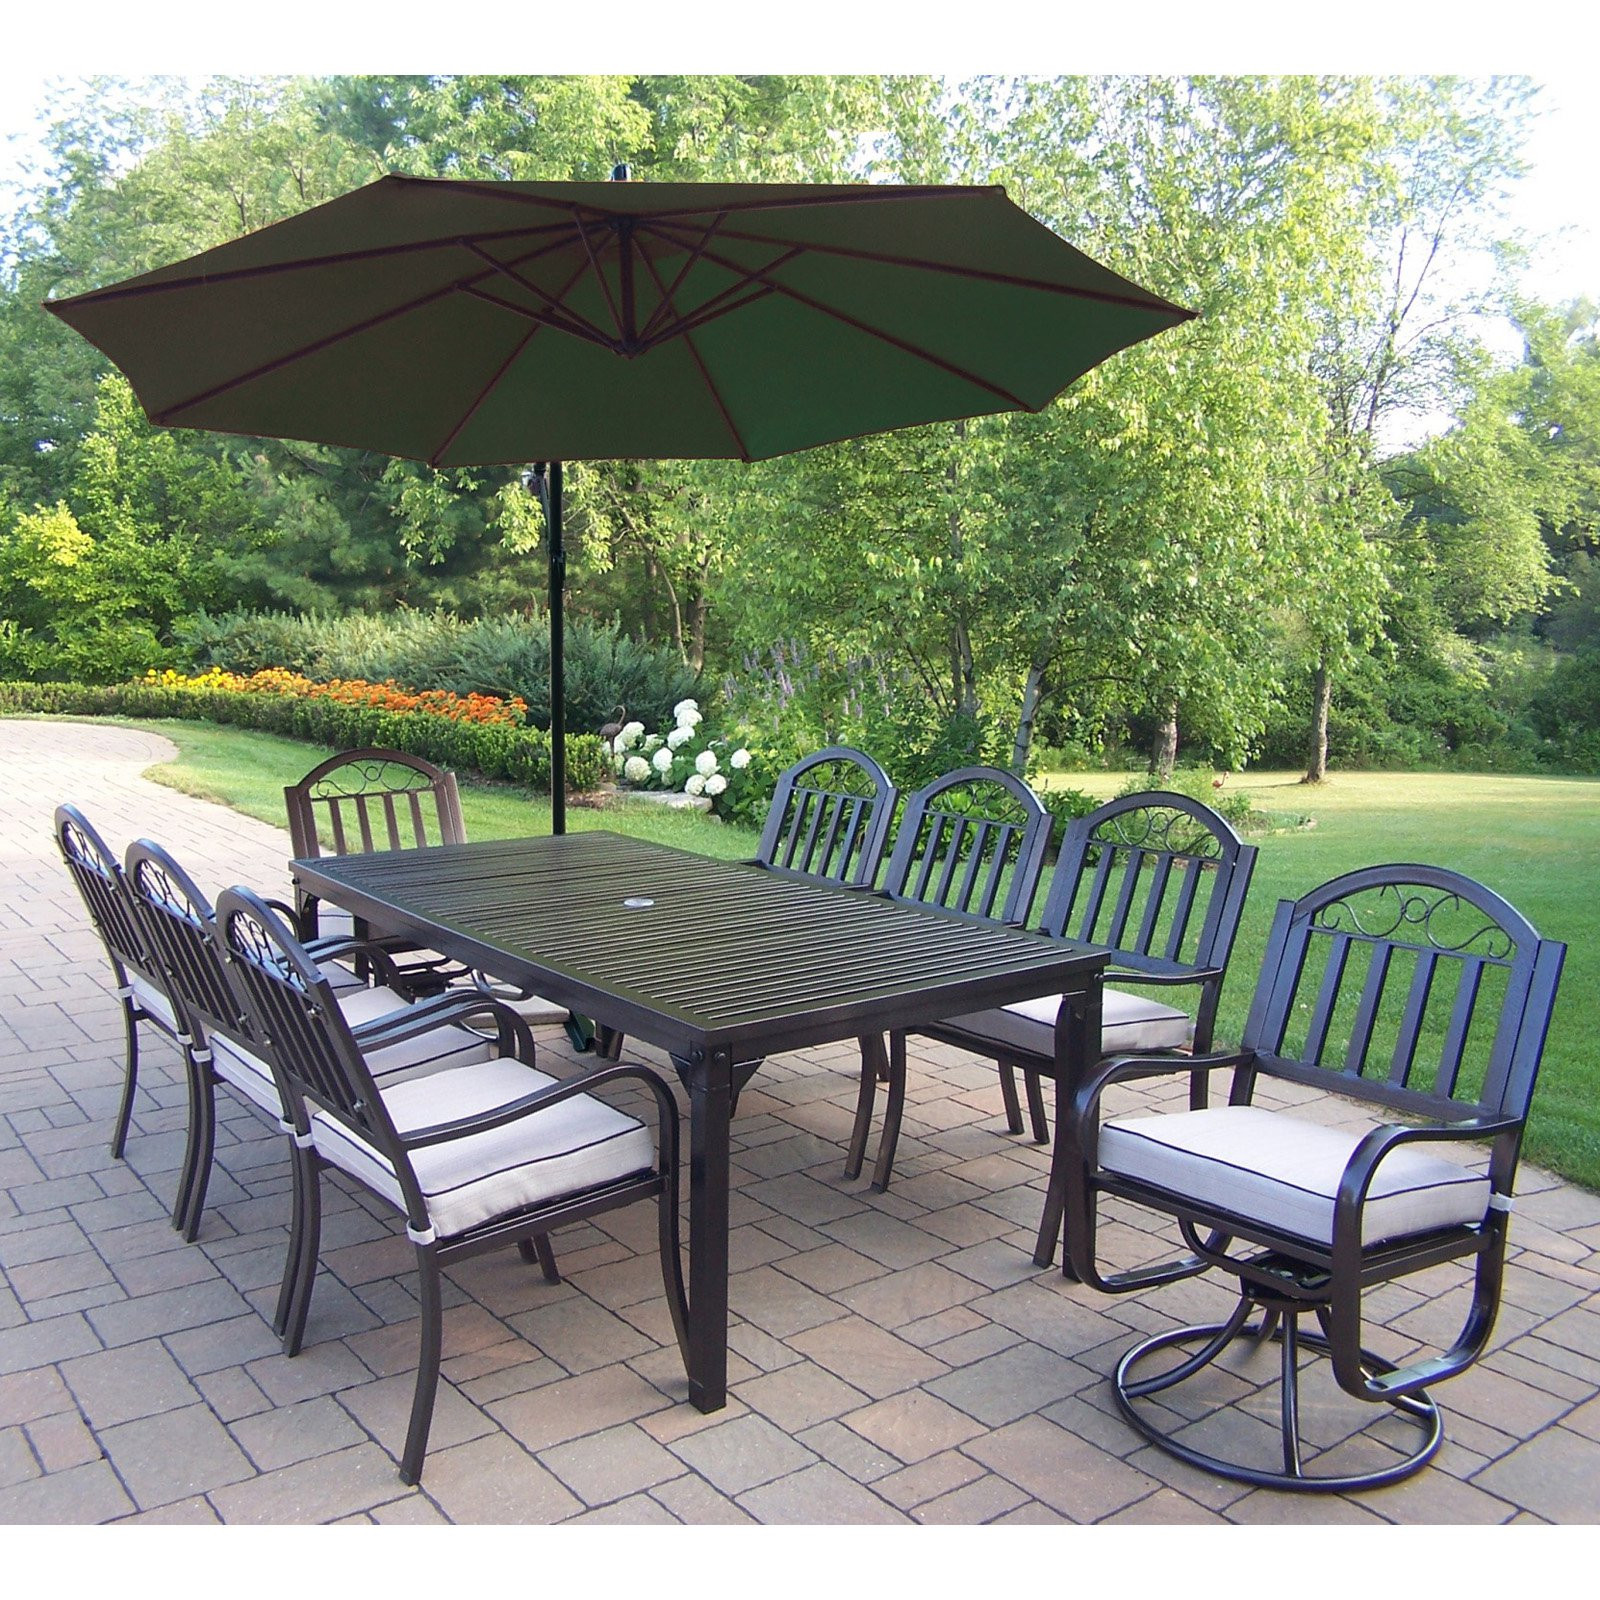 Best ideas about Patio Set With Umbrella . Save or Pin Oakland Living Rochester 80 x 40 in Patio Dining Set with Now.